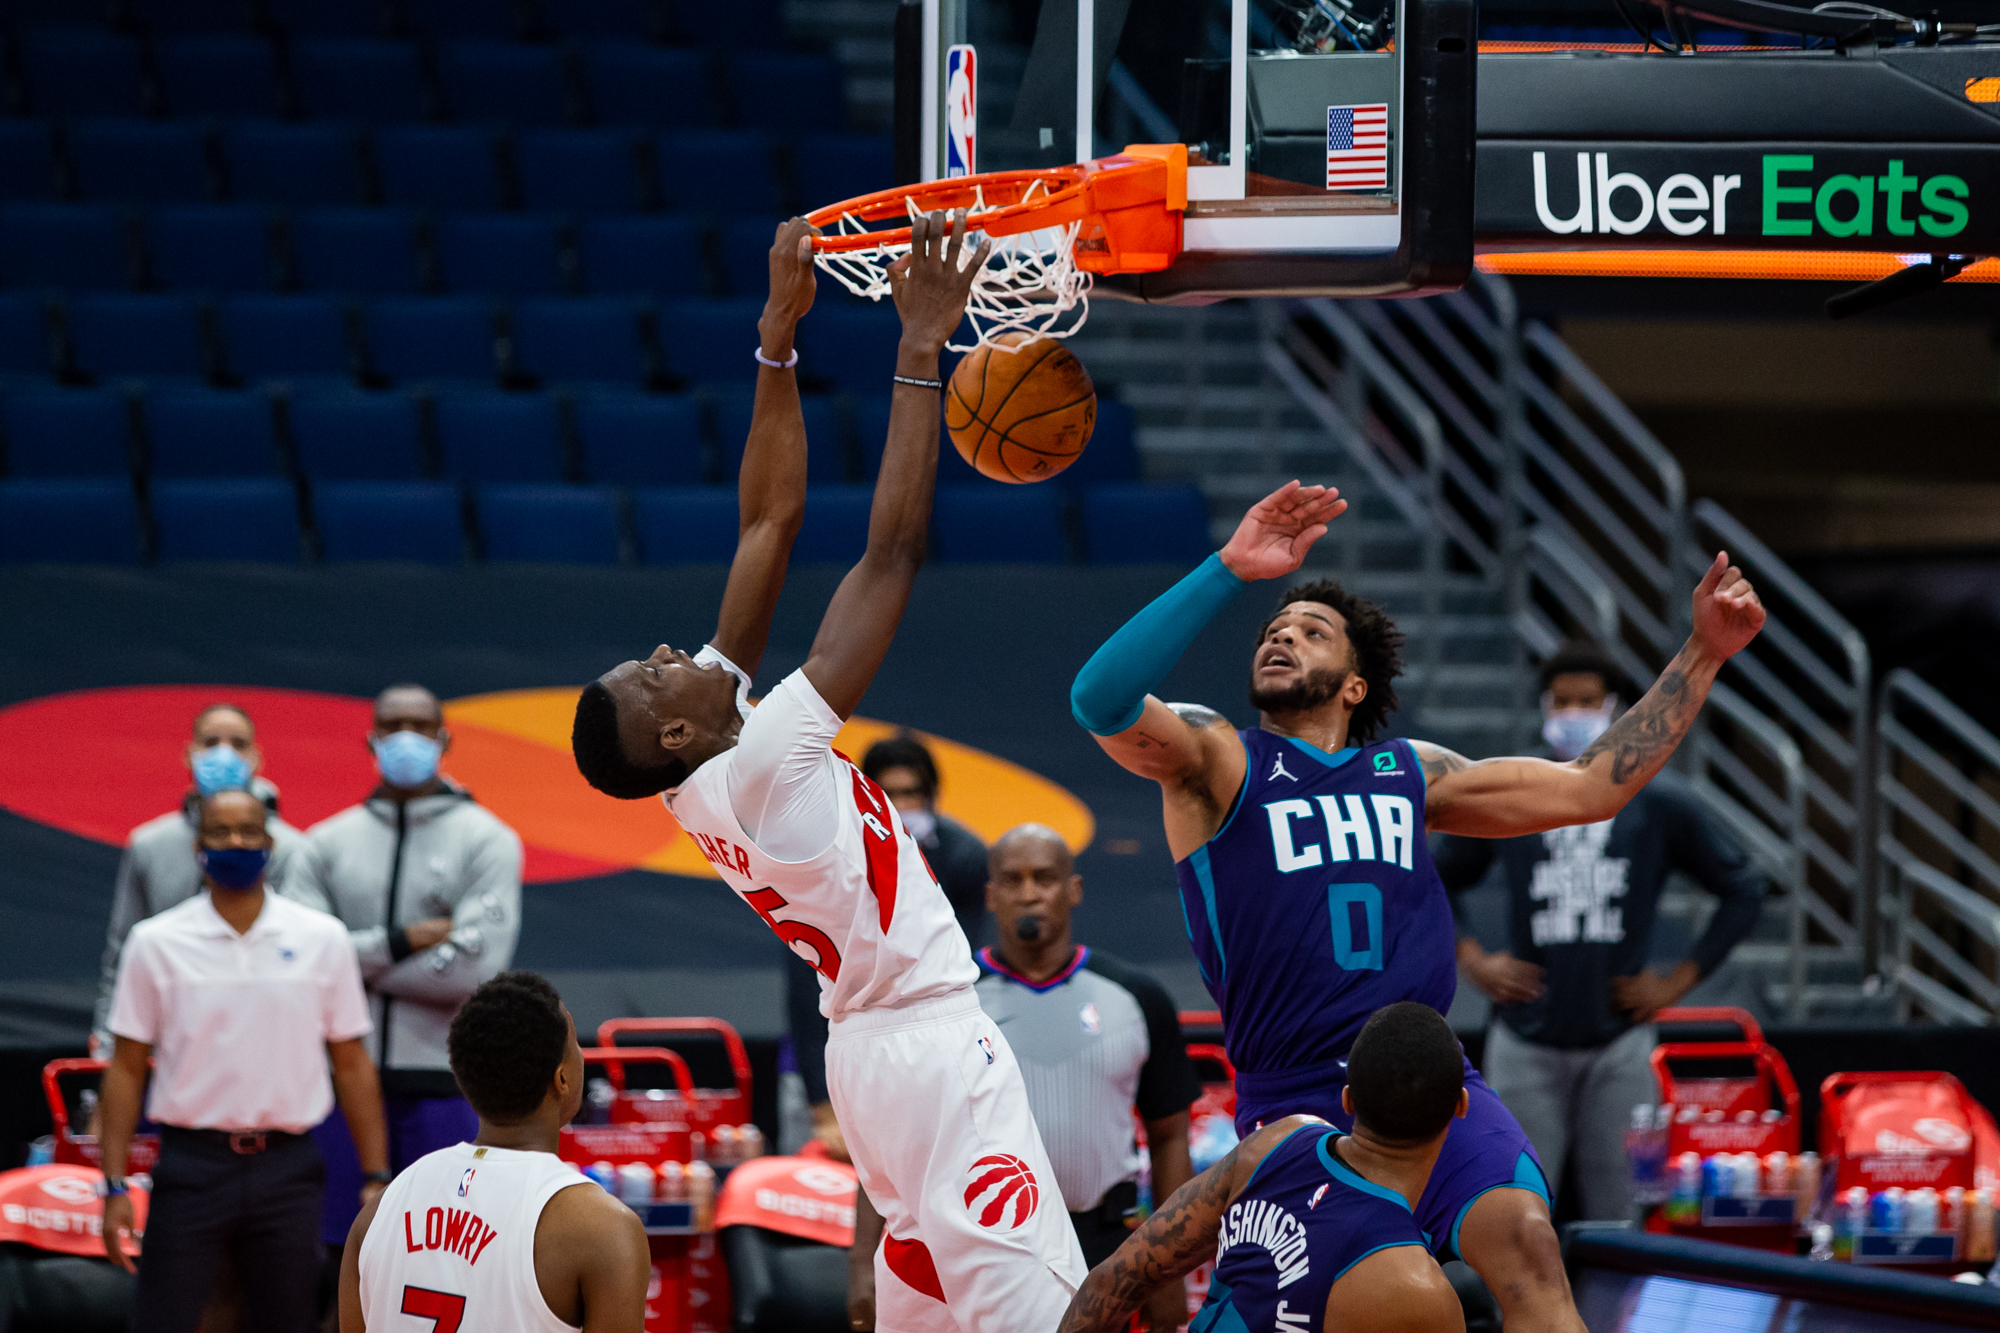 Jan 14, 2021; Tampa, Florida, USA; Toronto Raptors forward Chris Boucher (25) dunks over Charlotte Hornets forward Miles Bridges (0) during the fourth quarter of a game at Amalie Arena. Mandatory Credit: Mary Holt-USA TODAY Sports